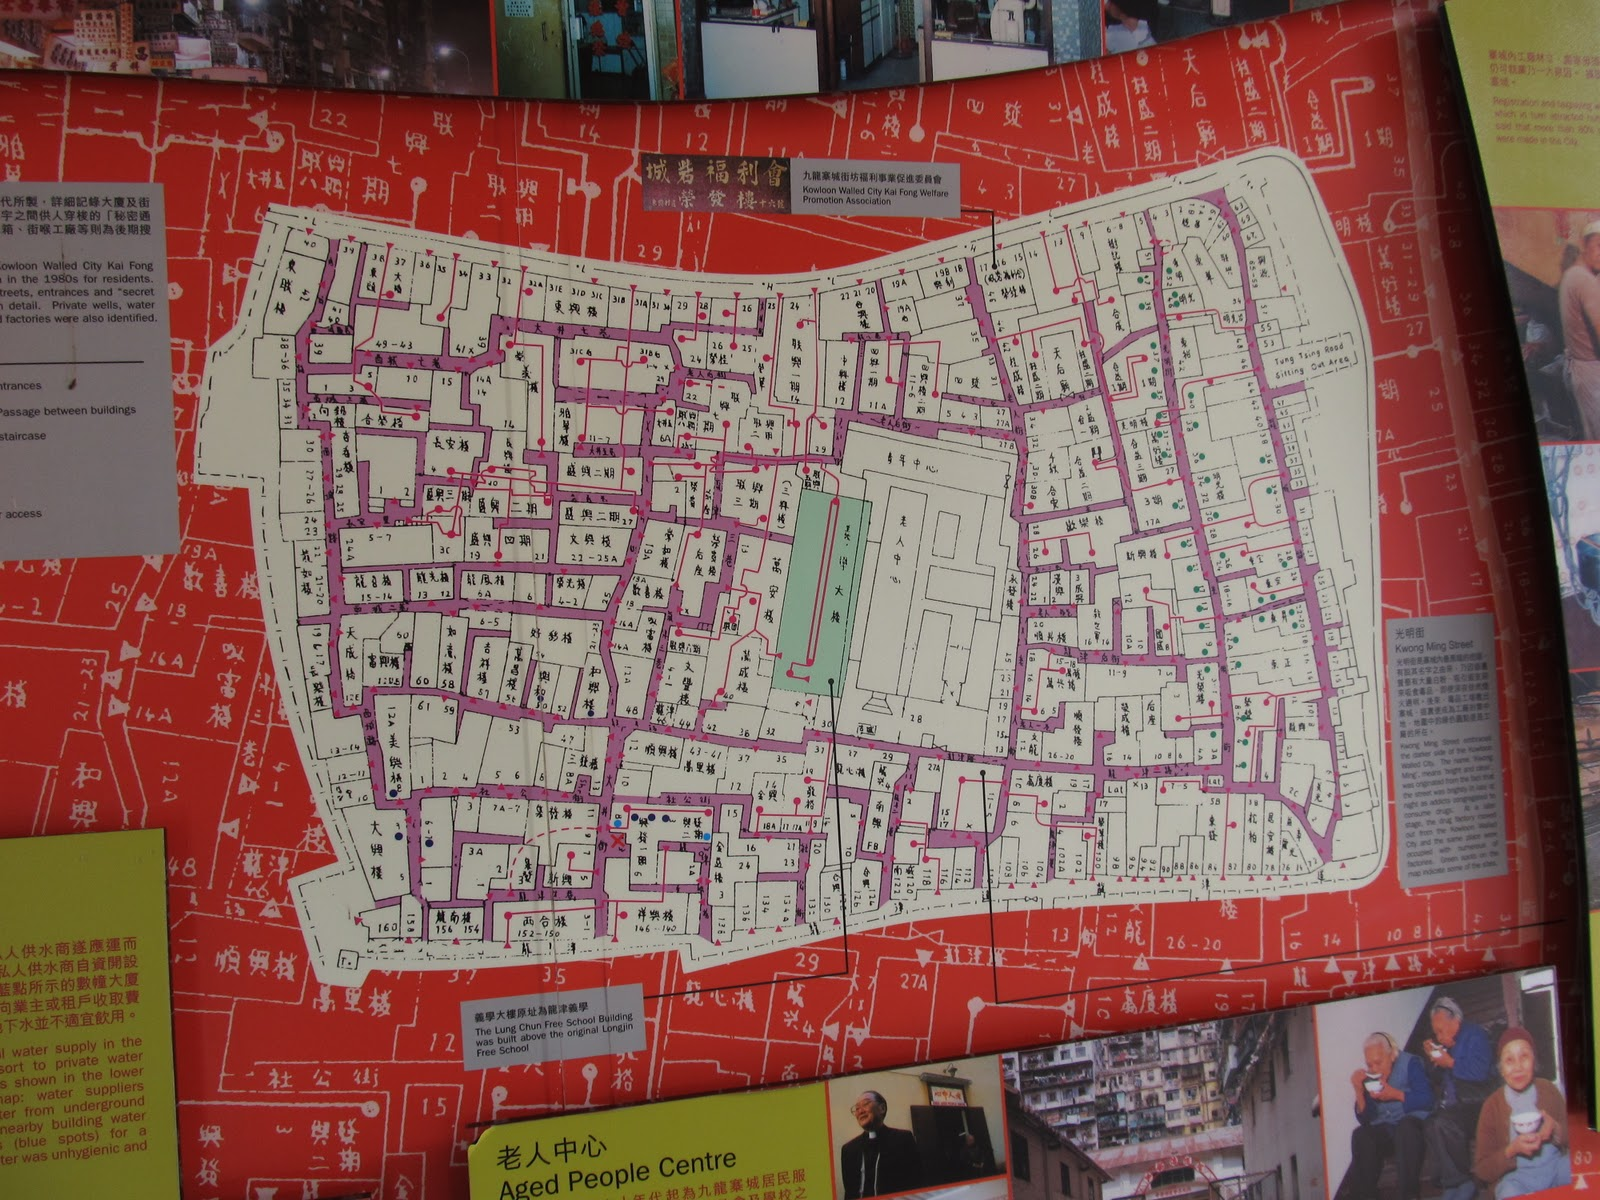 Maps of the real Kowloon Walled City